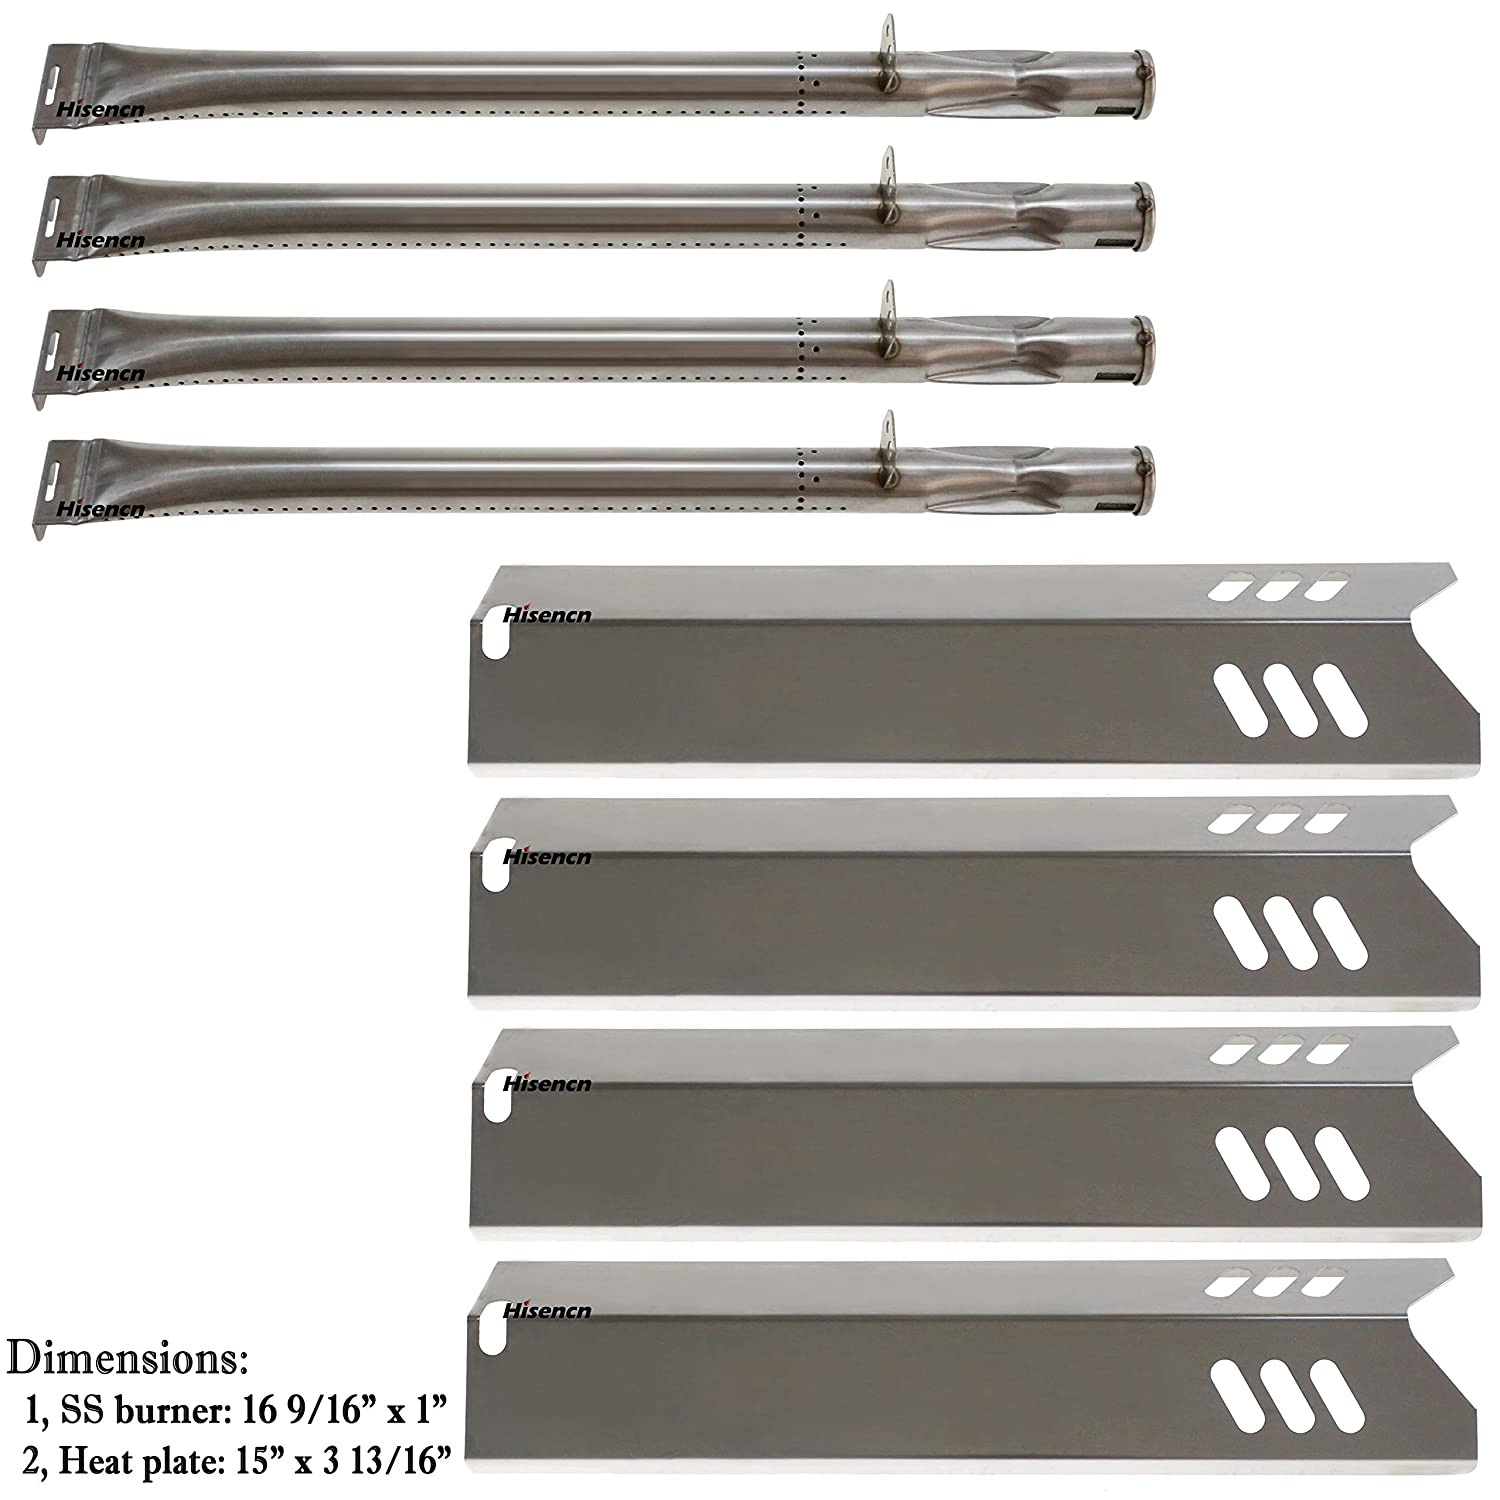 Hisencn Set of 4 Stainless Steel Burners & Heat Plates, Burner Cover Repair kit Replacment for Better Home and Garden BH15-101-099-02, Backyard, Uniflame Gas Grill